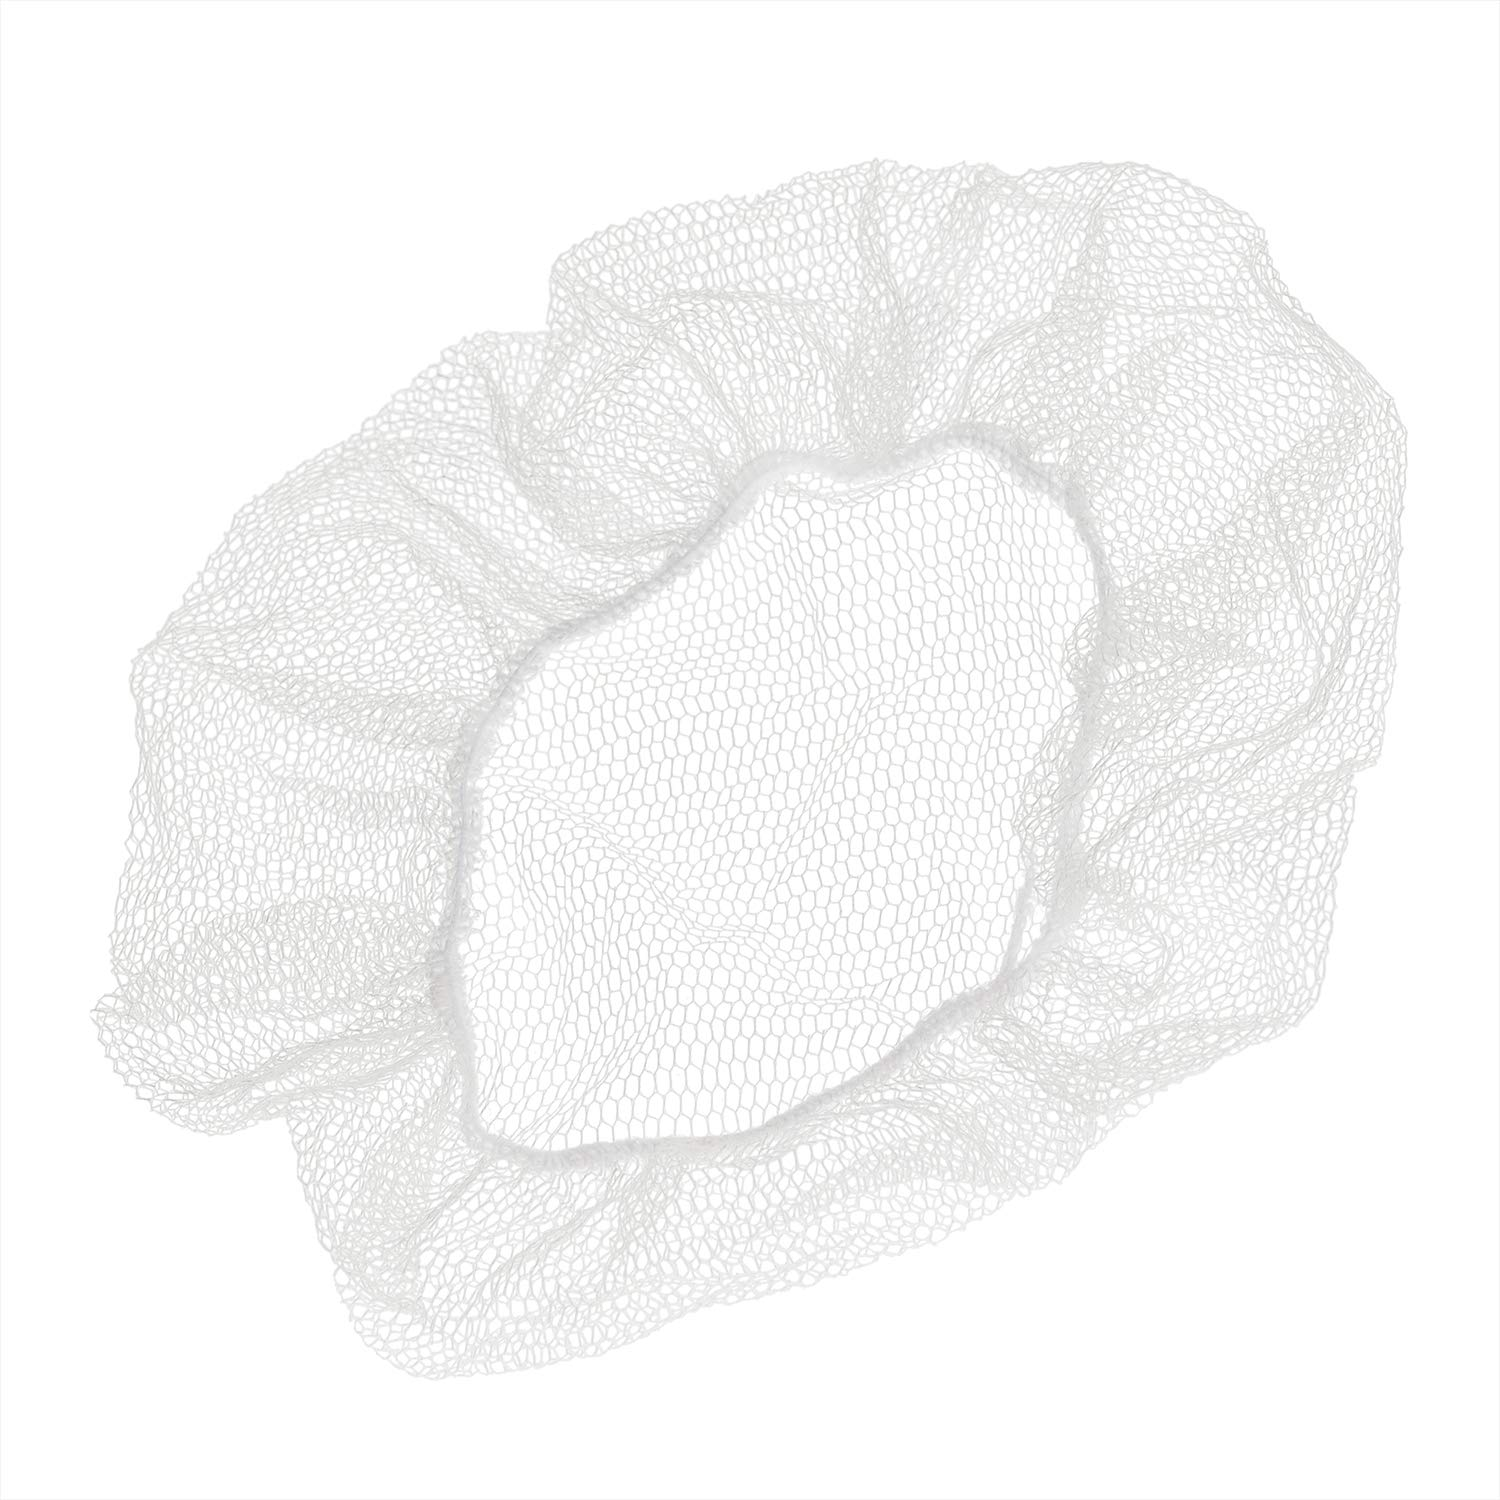 Royal 18 Inch White Disposable Koronet, Disposable and Latex Free, Package of 100